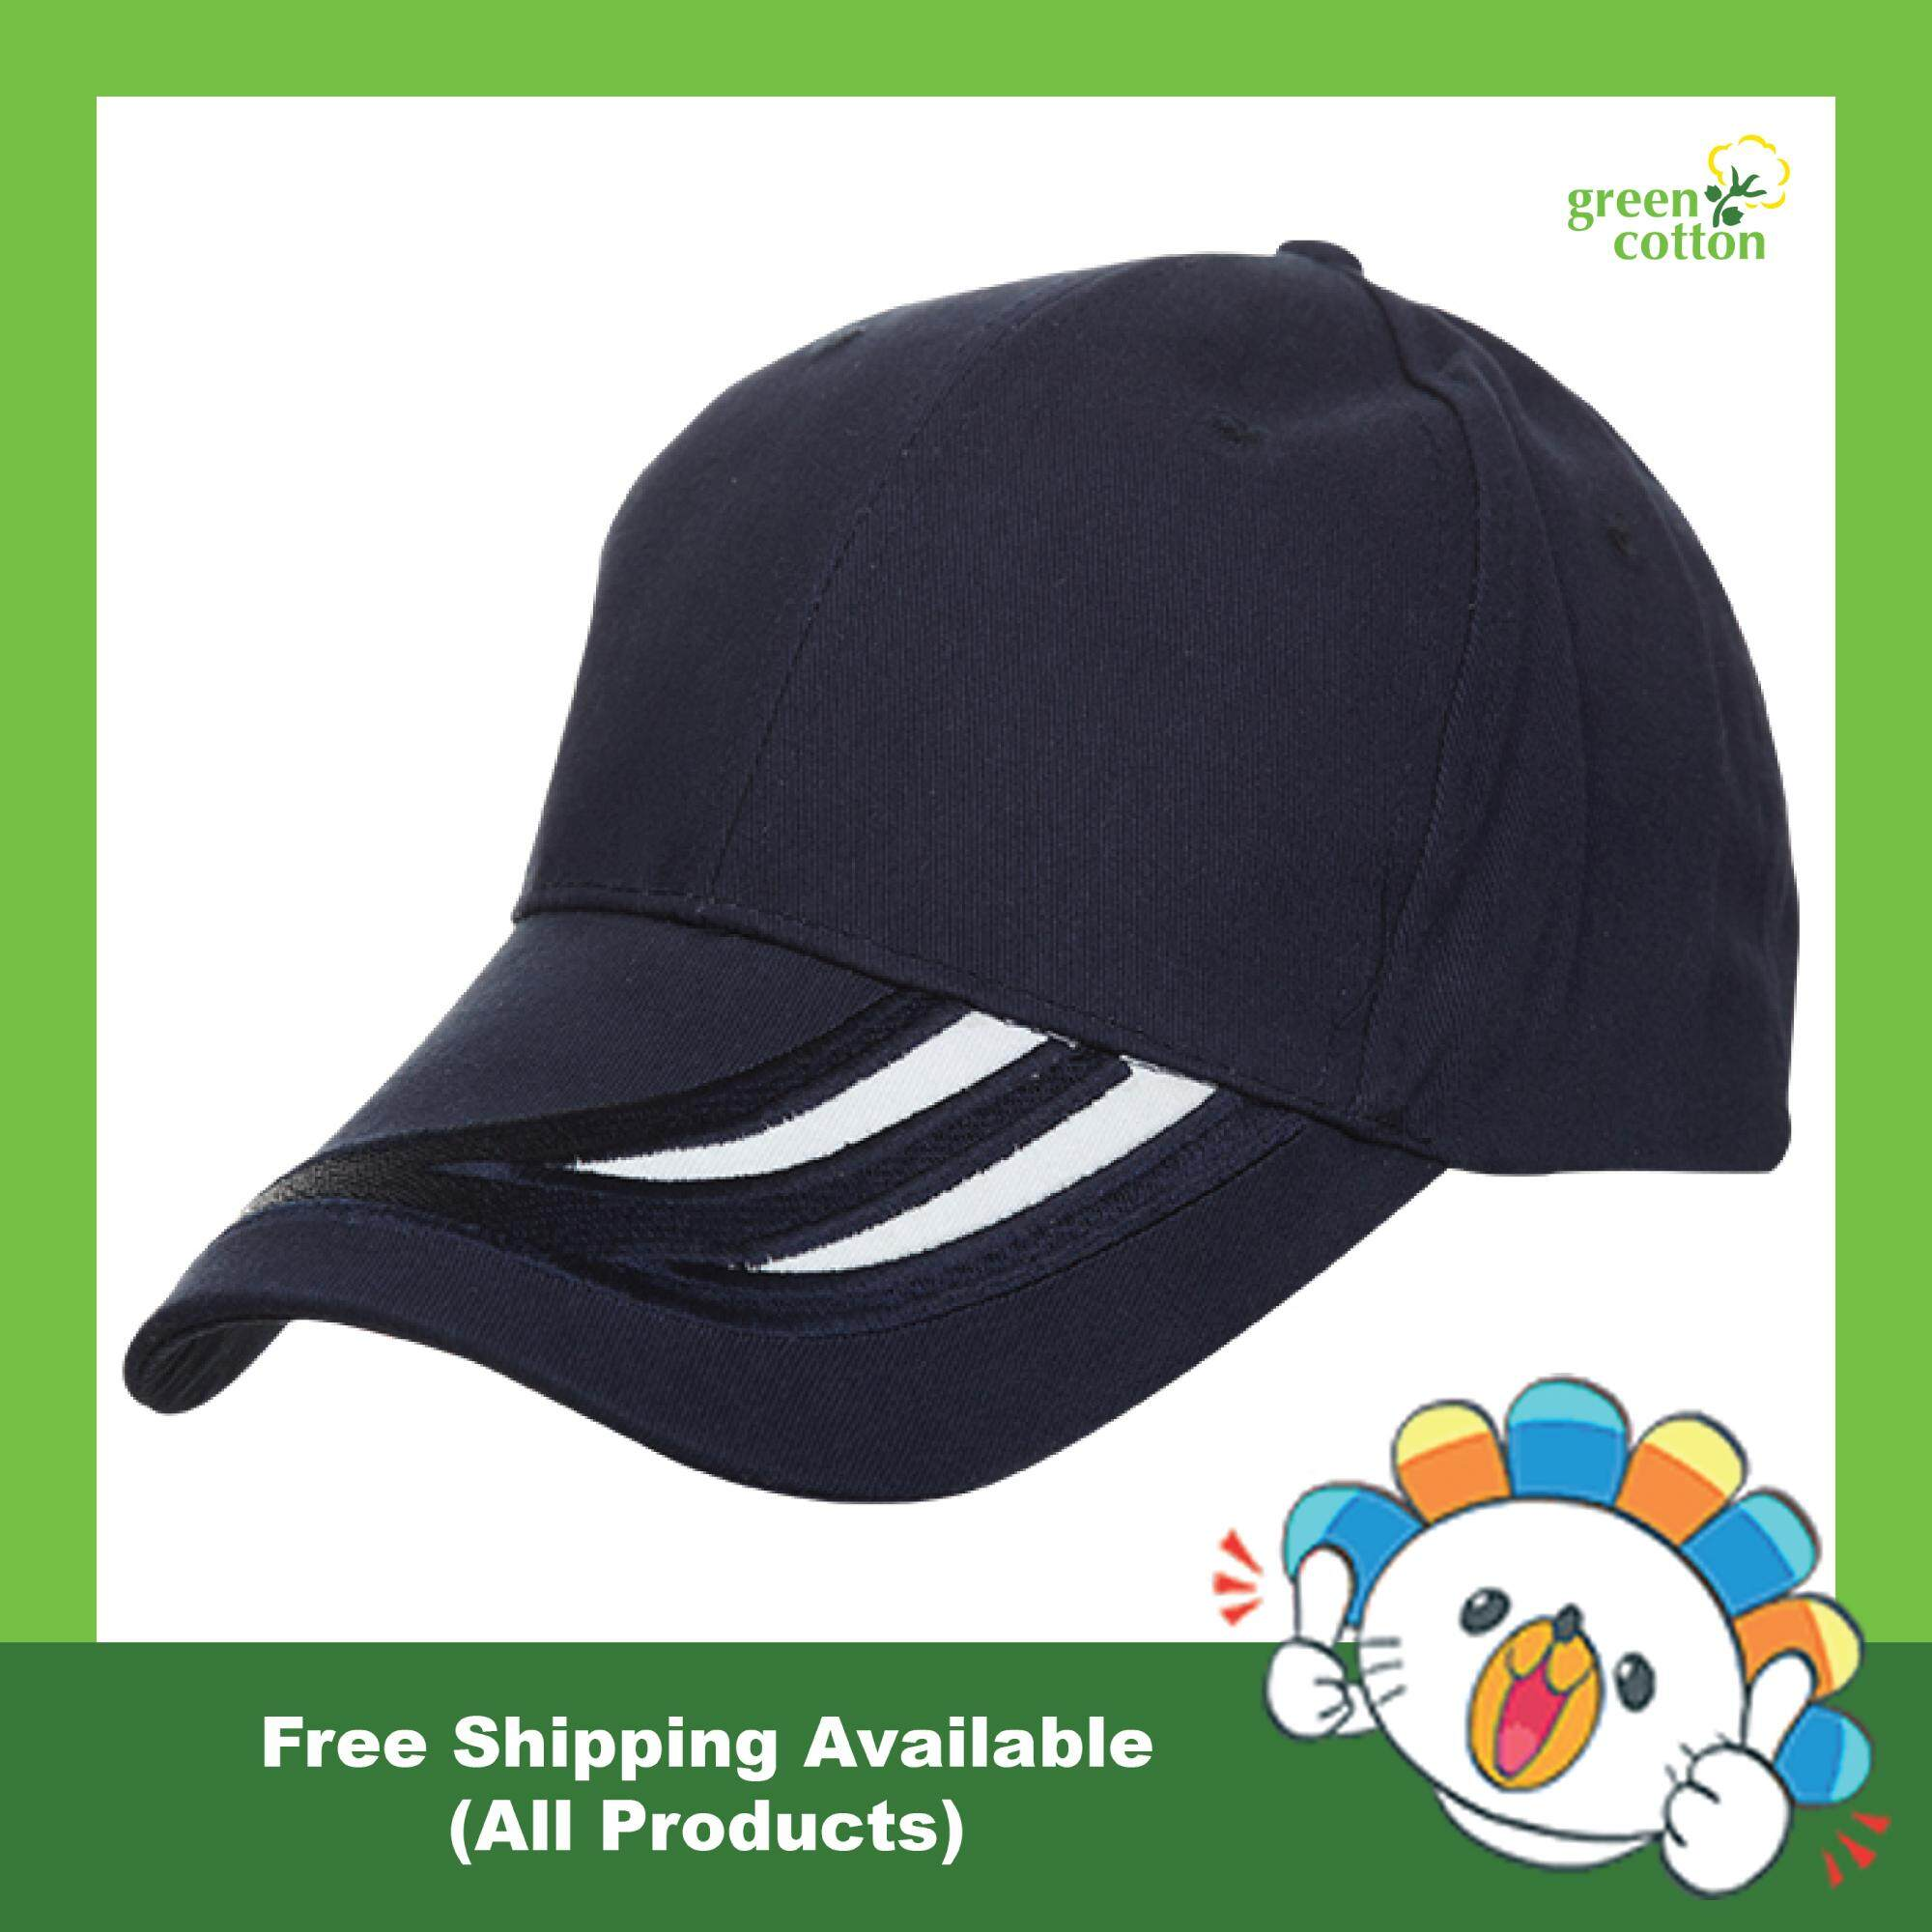 22889e5a Men's Ladies Best Seller Quality Cotton Brush Outdoor Hat Casual Sports  Wear Baseball Cap Curve Visor